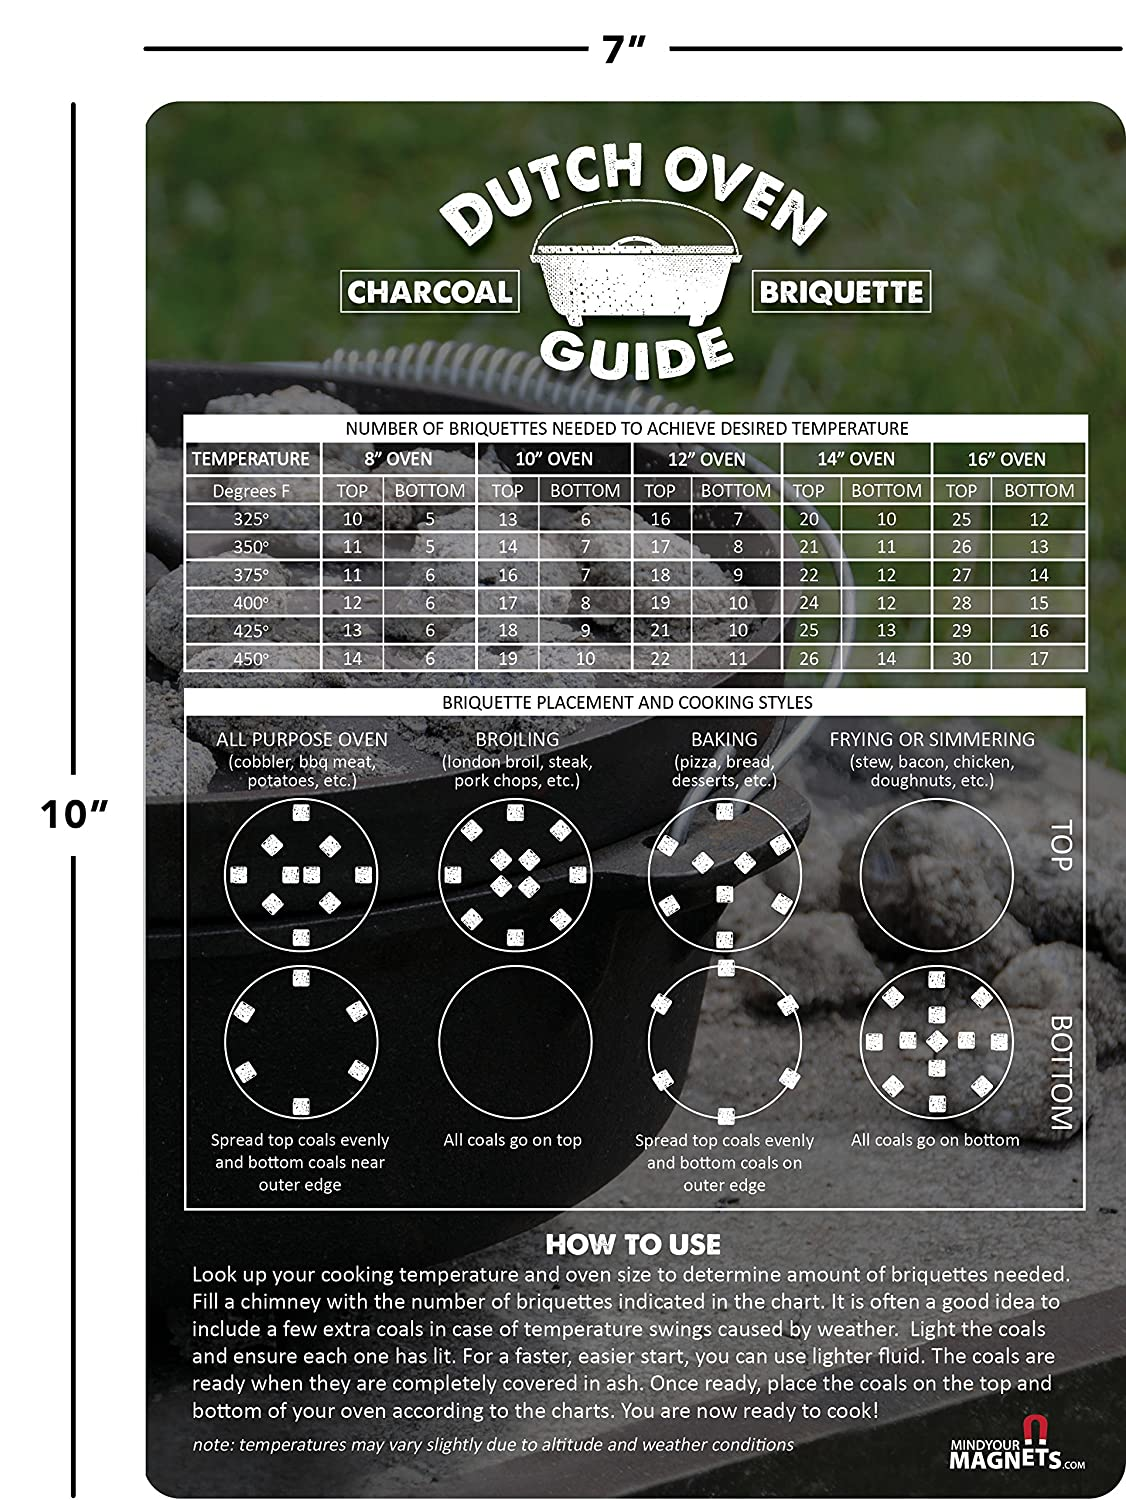 Amazon dutch oven charcoal briquettes magnetic cheat sheet amazon dutch oven charcoal briquettes magnetic cheat sheet briquette temperature conversion chart the perfect fridge magnet to add to your dutch nvjuhfo Images